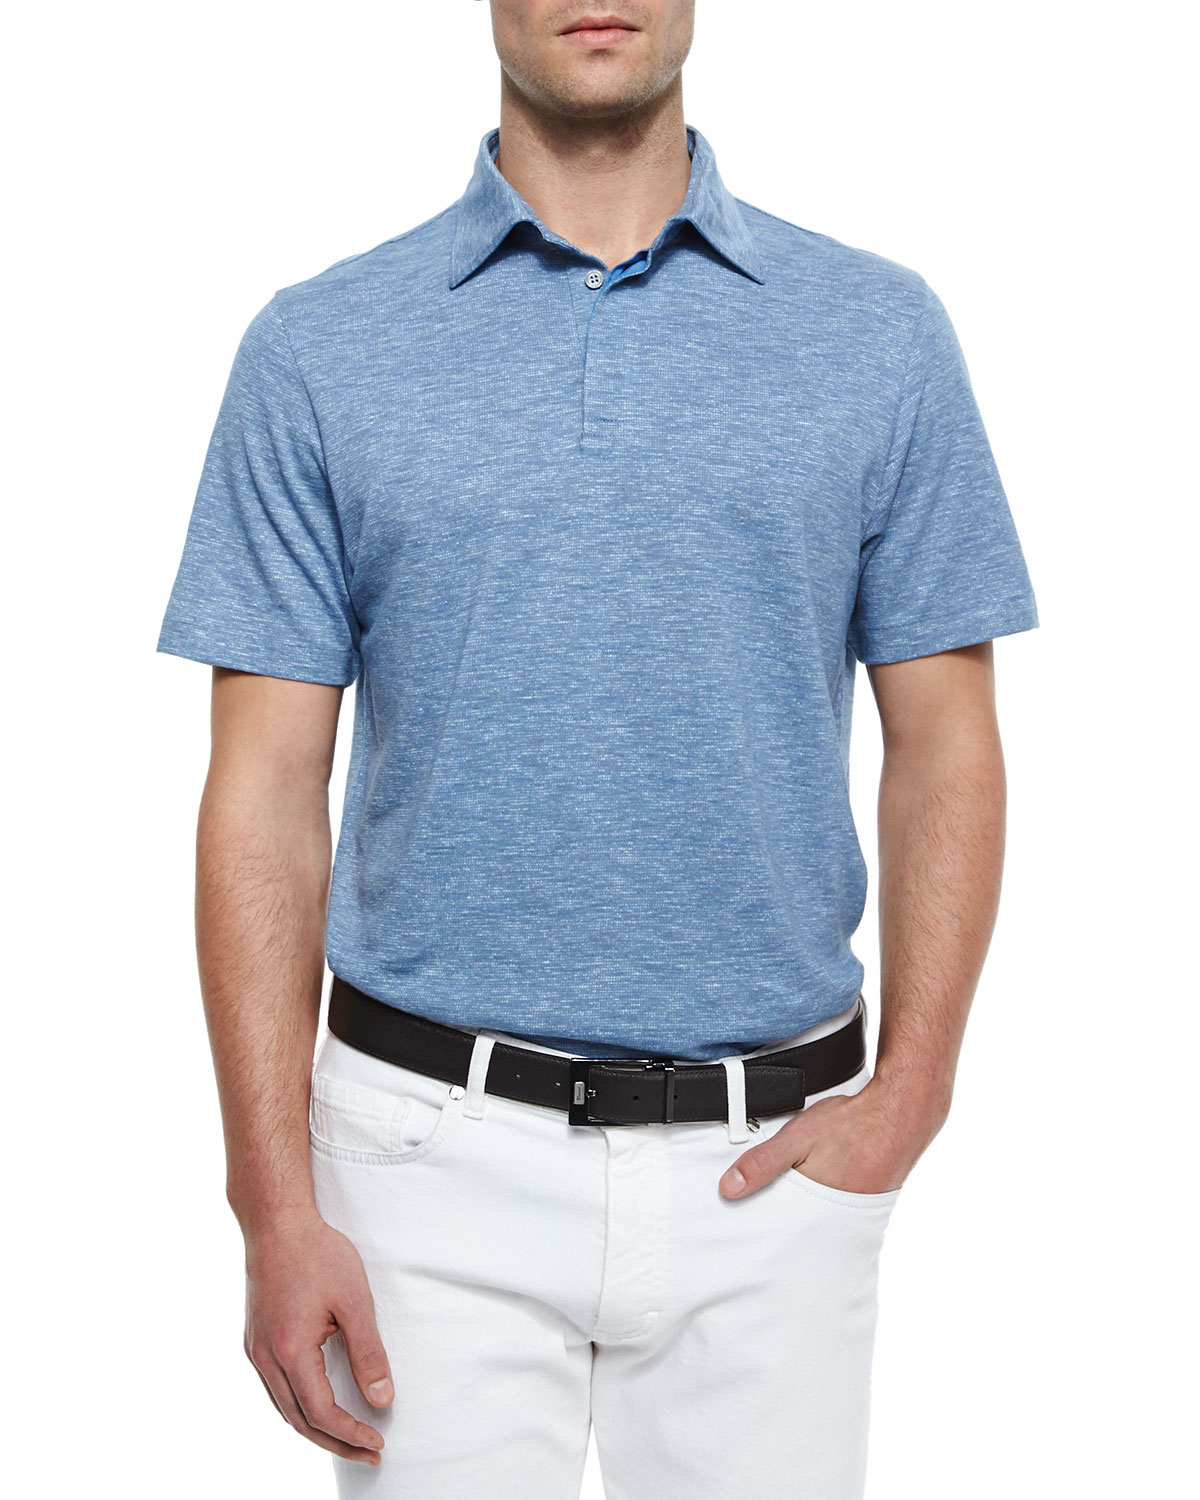 Ermenegildo zegna spread collar polo shirt in blue for men for Men s spread collar shirts